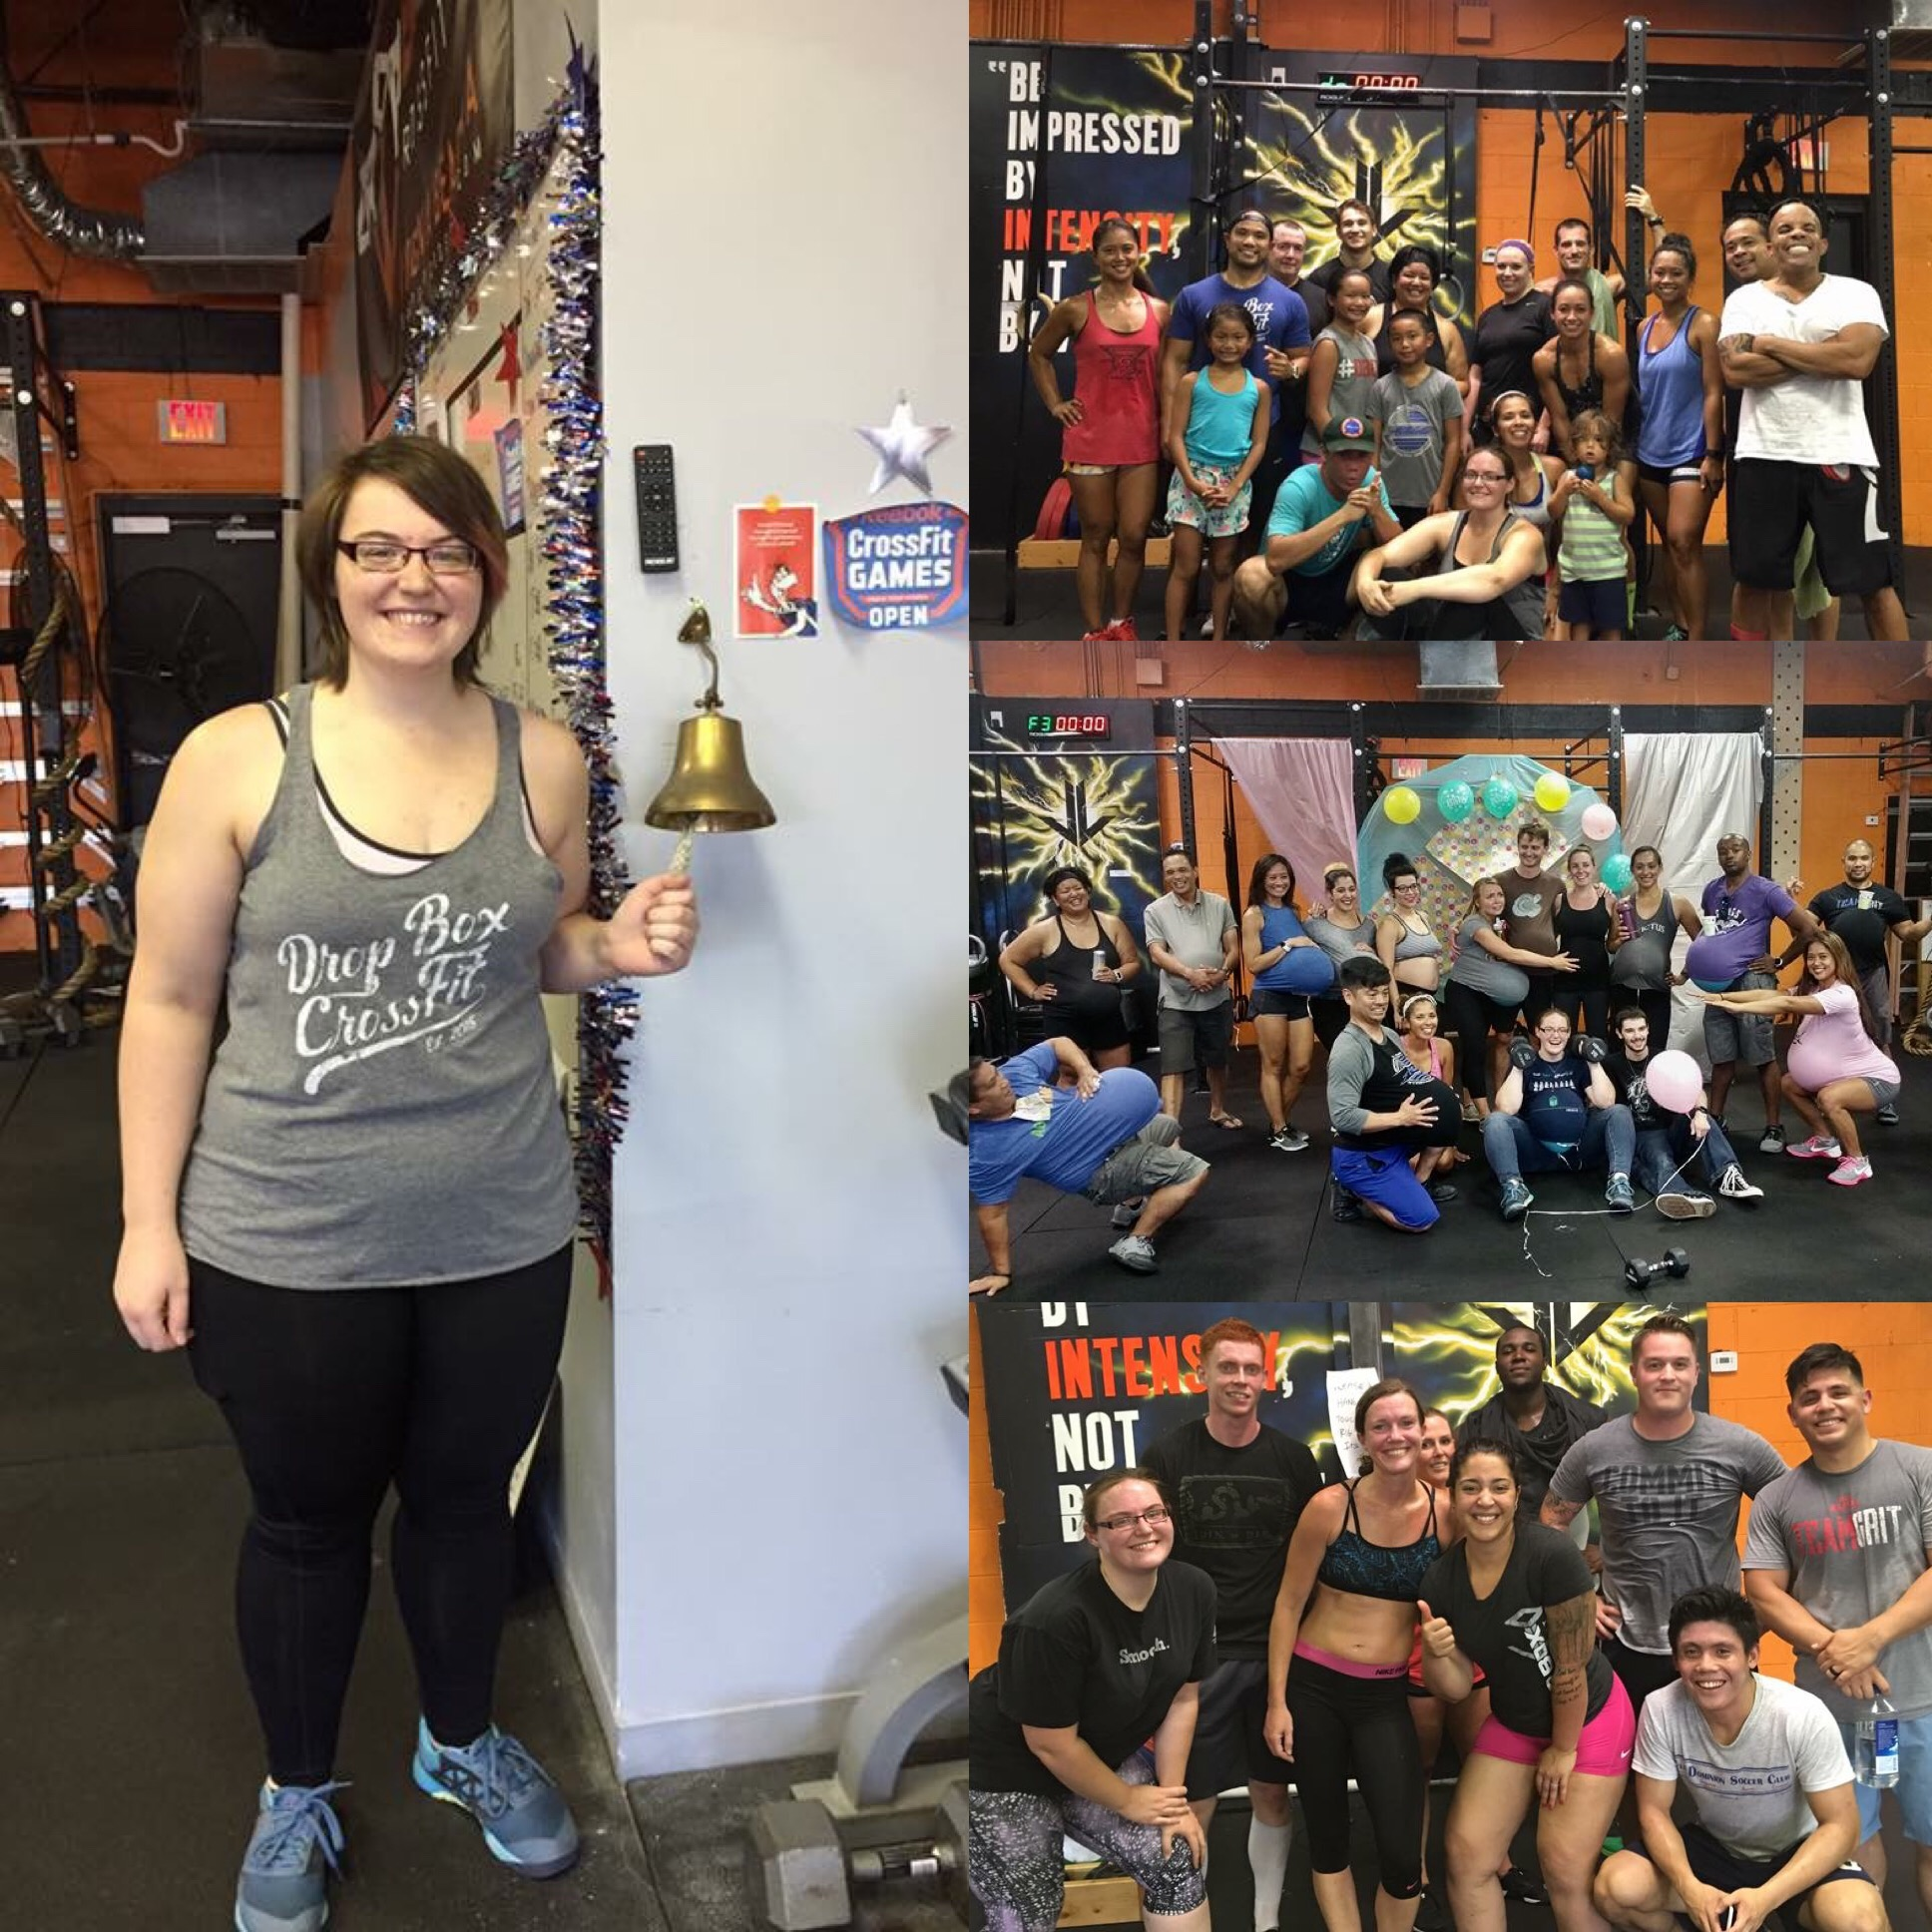 Stacey has been an active participant in all of our Nutrition Challenges held at the box. Here she is at celebrating an 8 week challenge at the PR bell where she lost over 22 pounds!